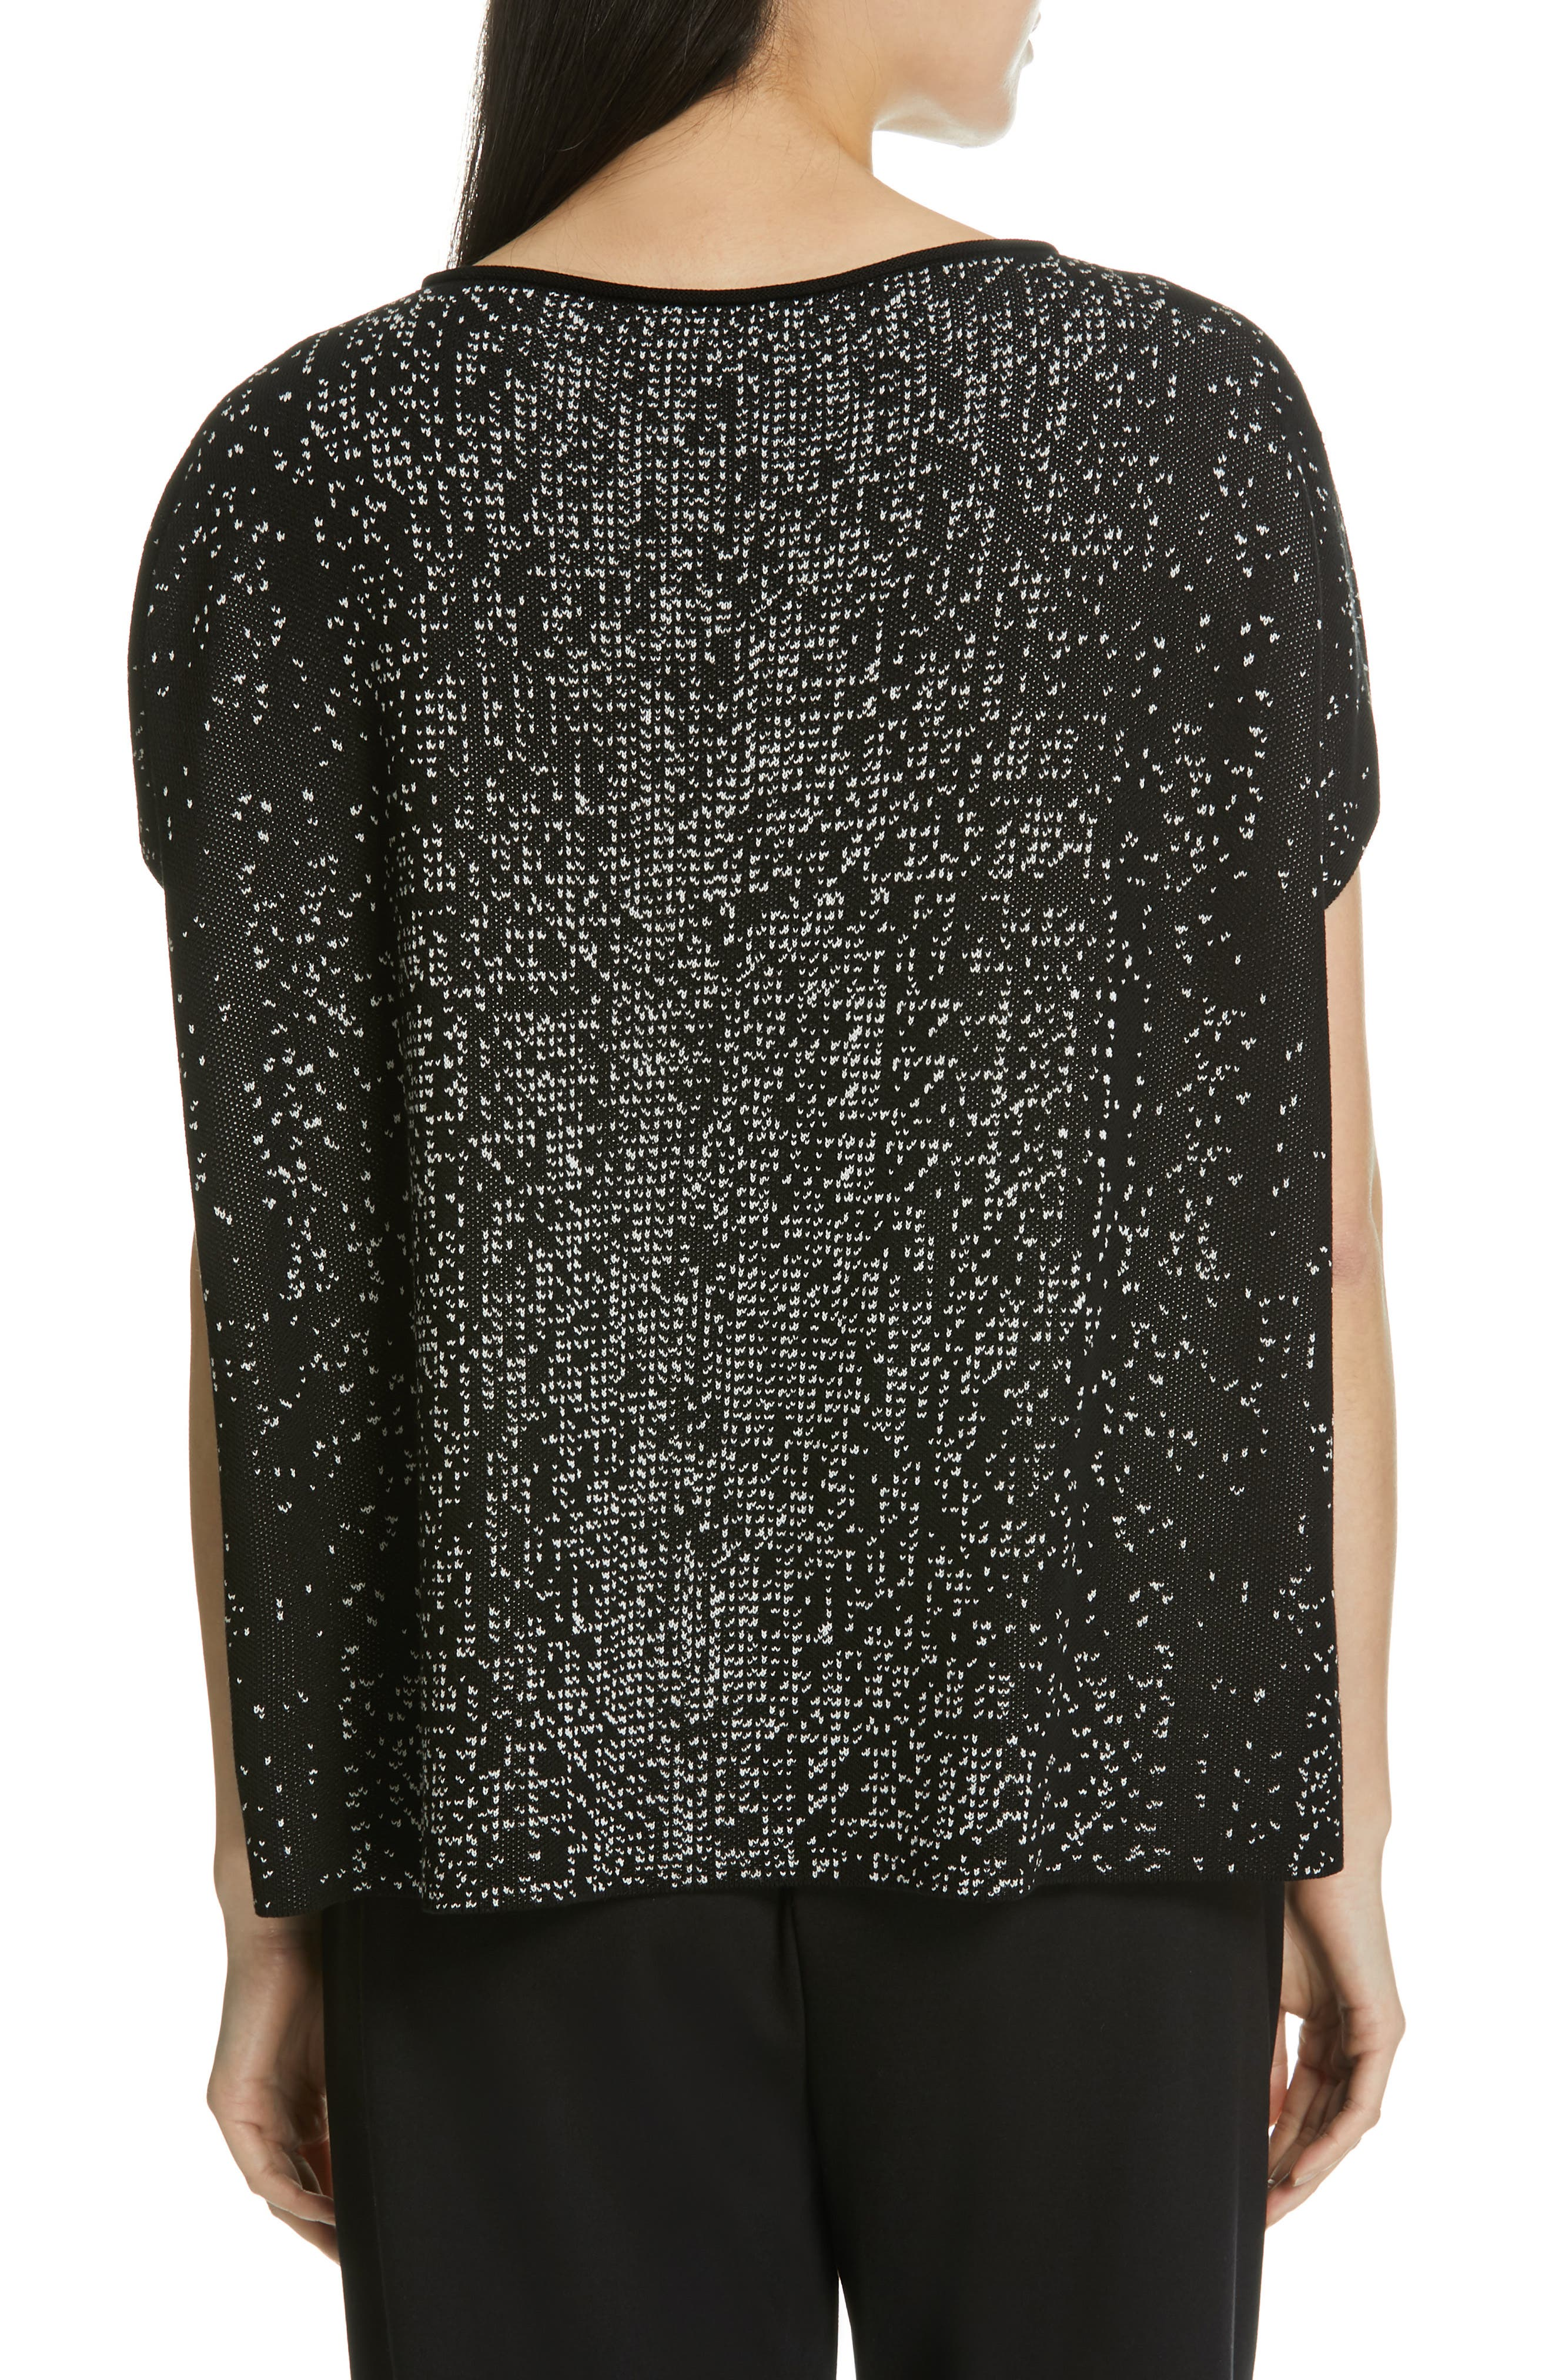 EILEEN FISHER,                             Bateau Neck Top,                             Alternate thumbnail 2, color,                             BLACK/ SOFT WHITE